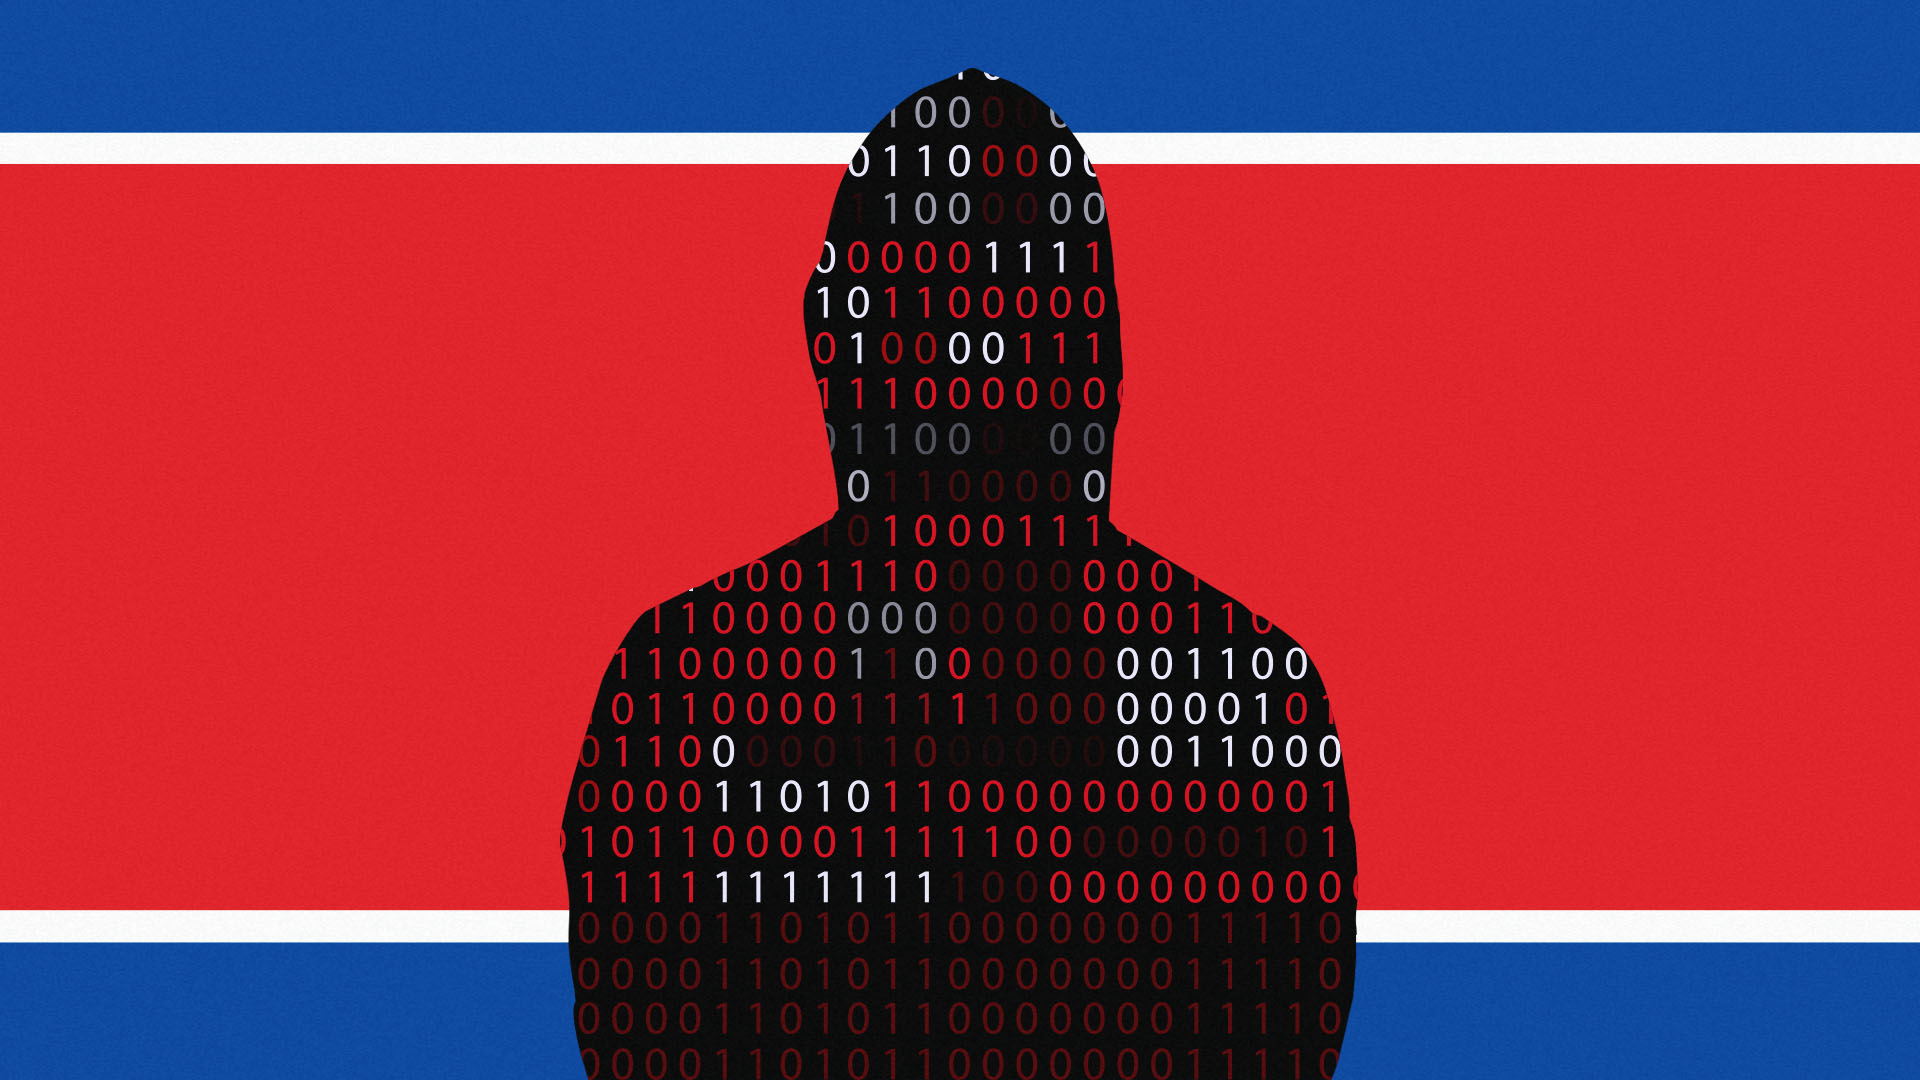 This is a hacker standing in front of a North Korean flag to represent Lazarus crew.